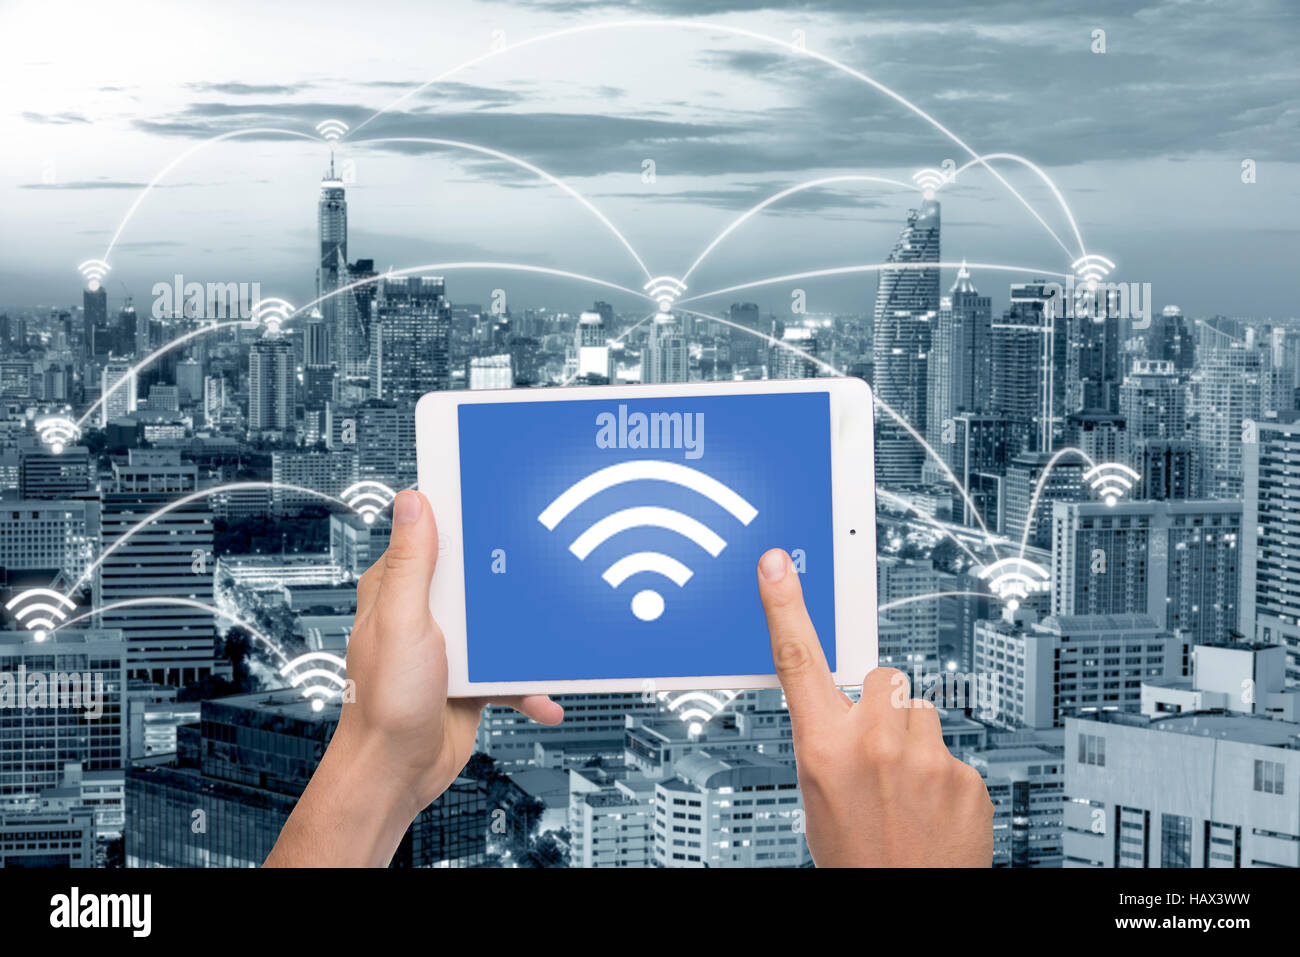 Hand holding tablet with wifi icon on city and network connection concept. Bangkok smart city and wireless communication - Stock Image